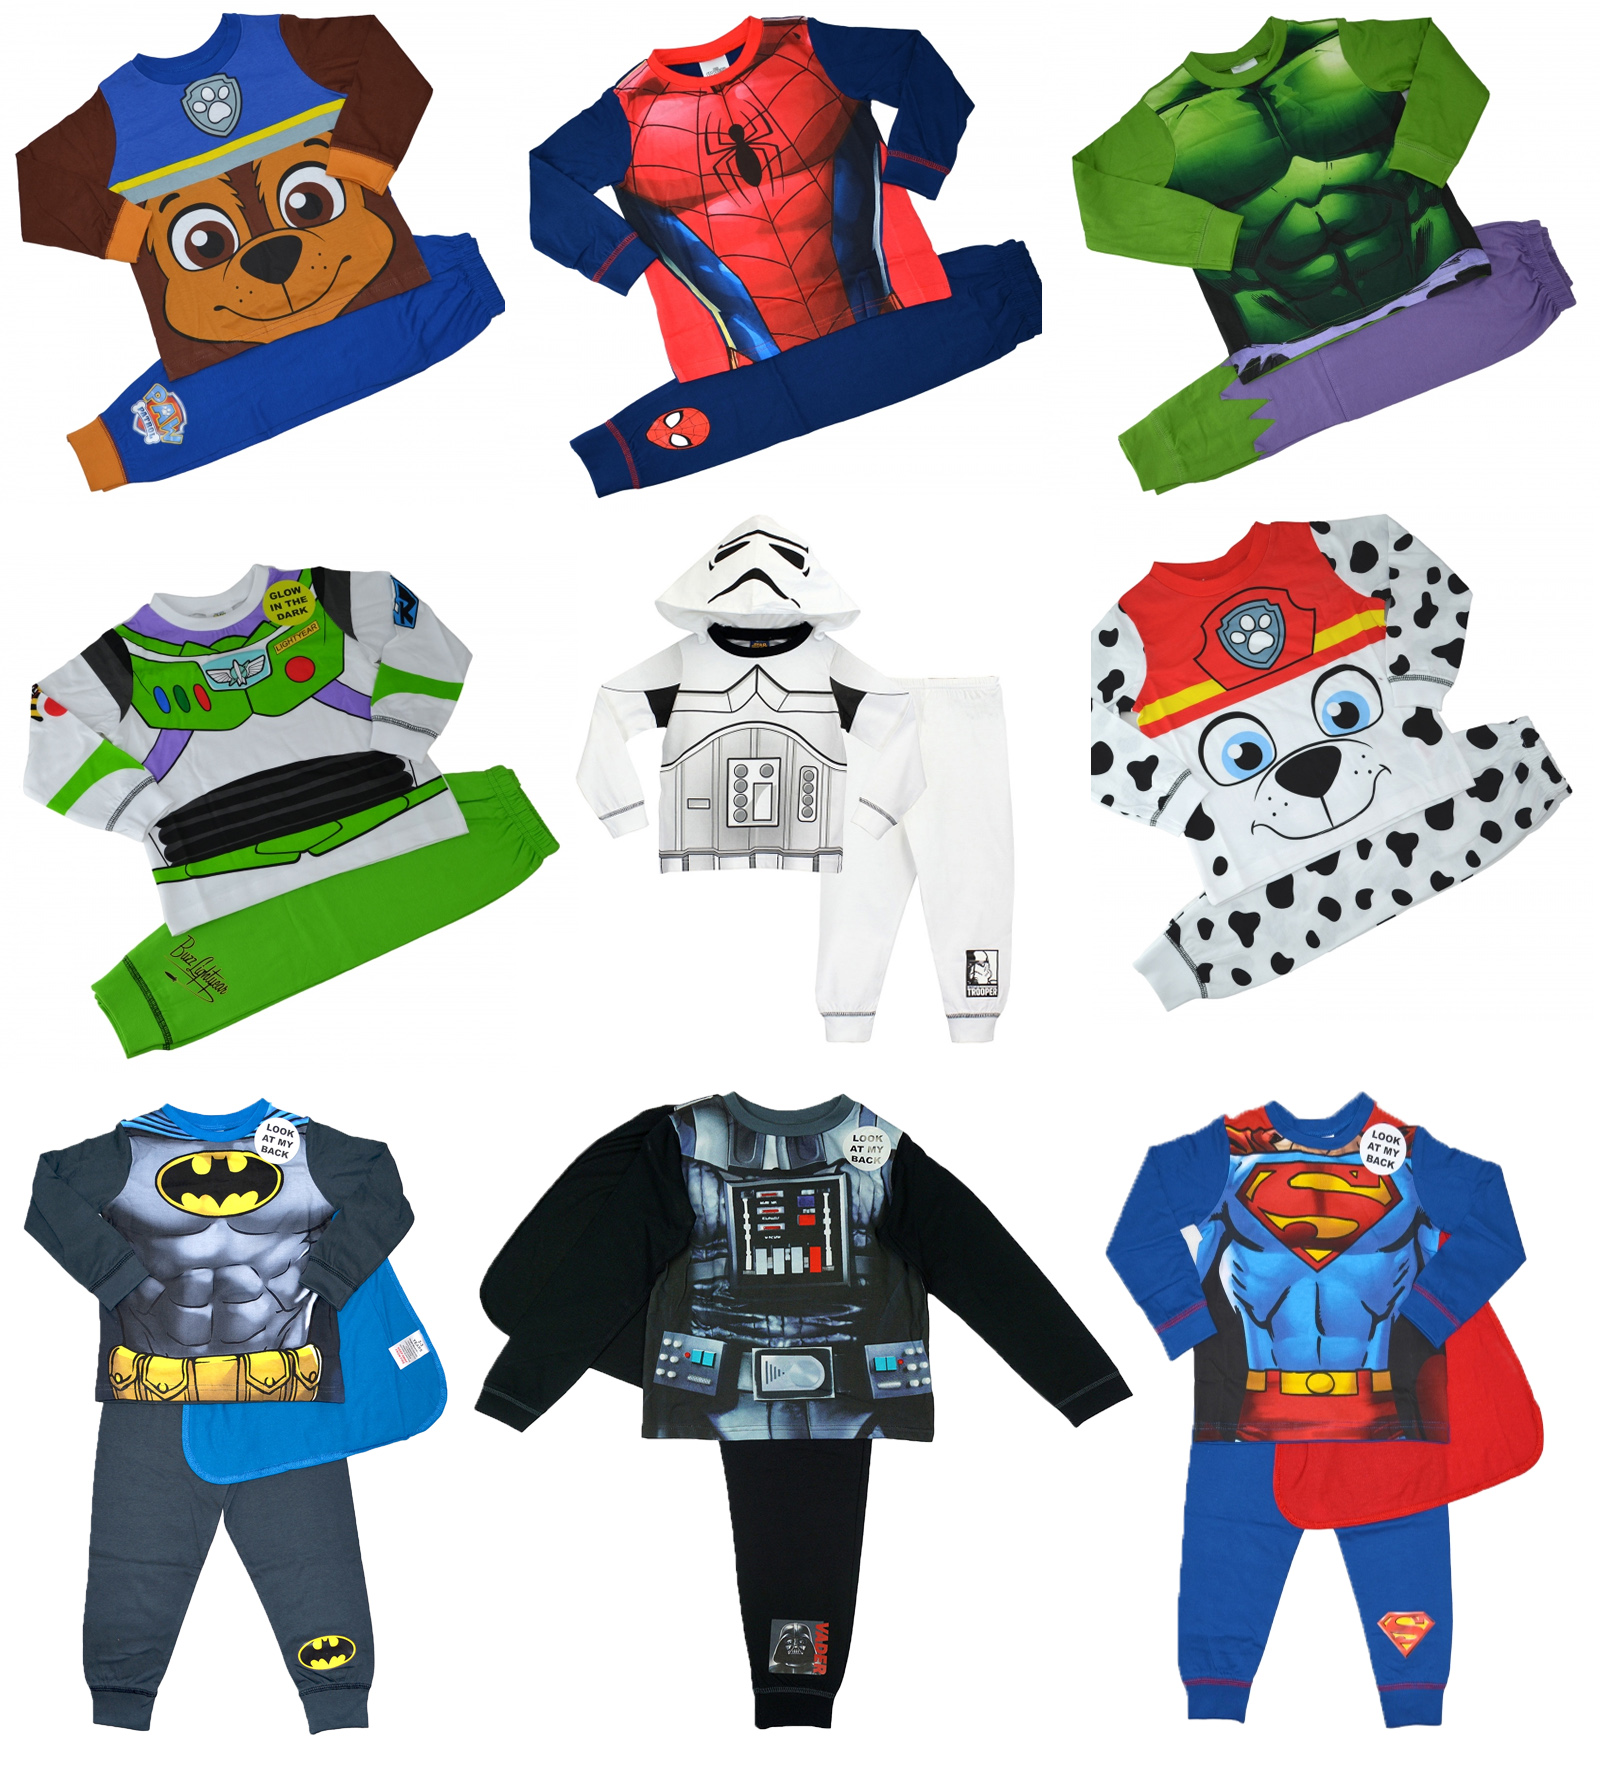 2pcs Boys Toddler Kids Superhero Outfits Set Pajamas Sleepwear Pyjamas Nightwear